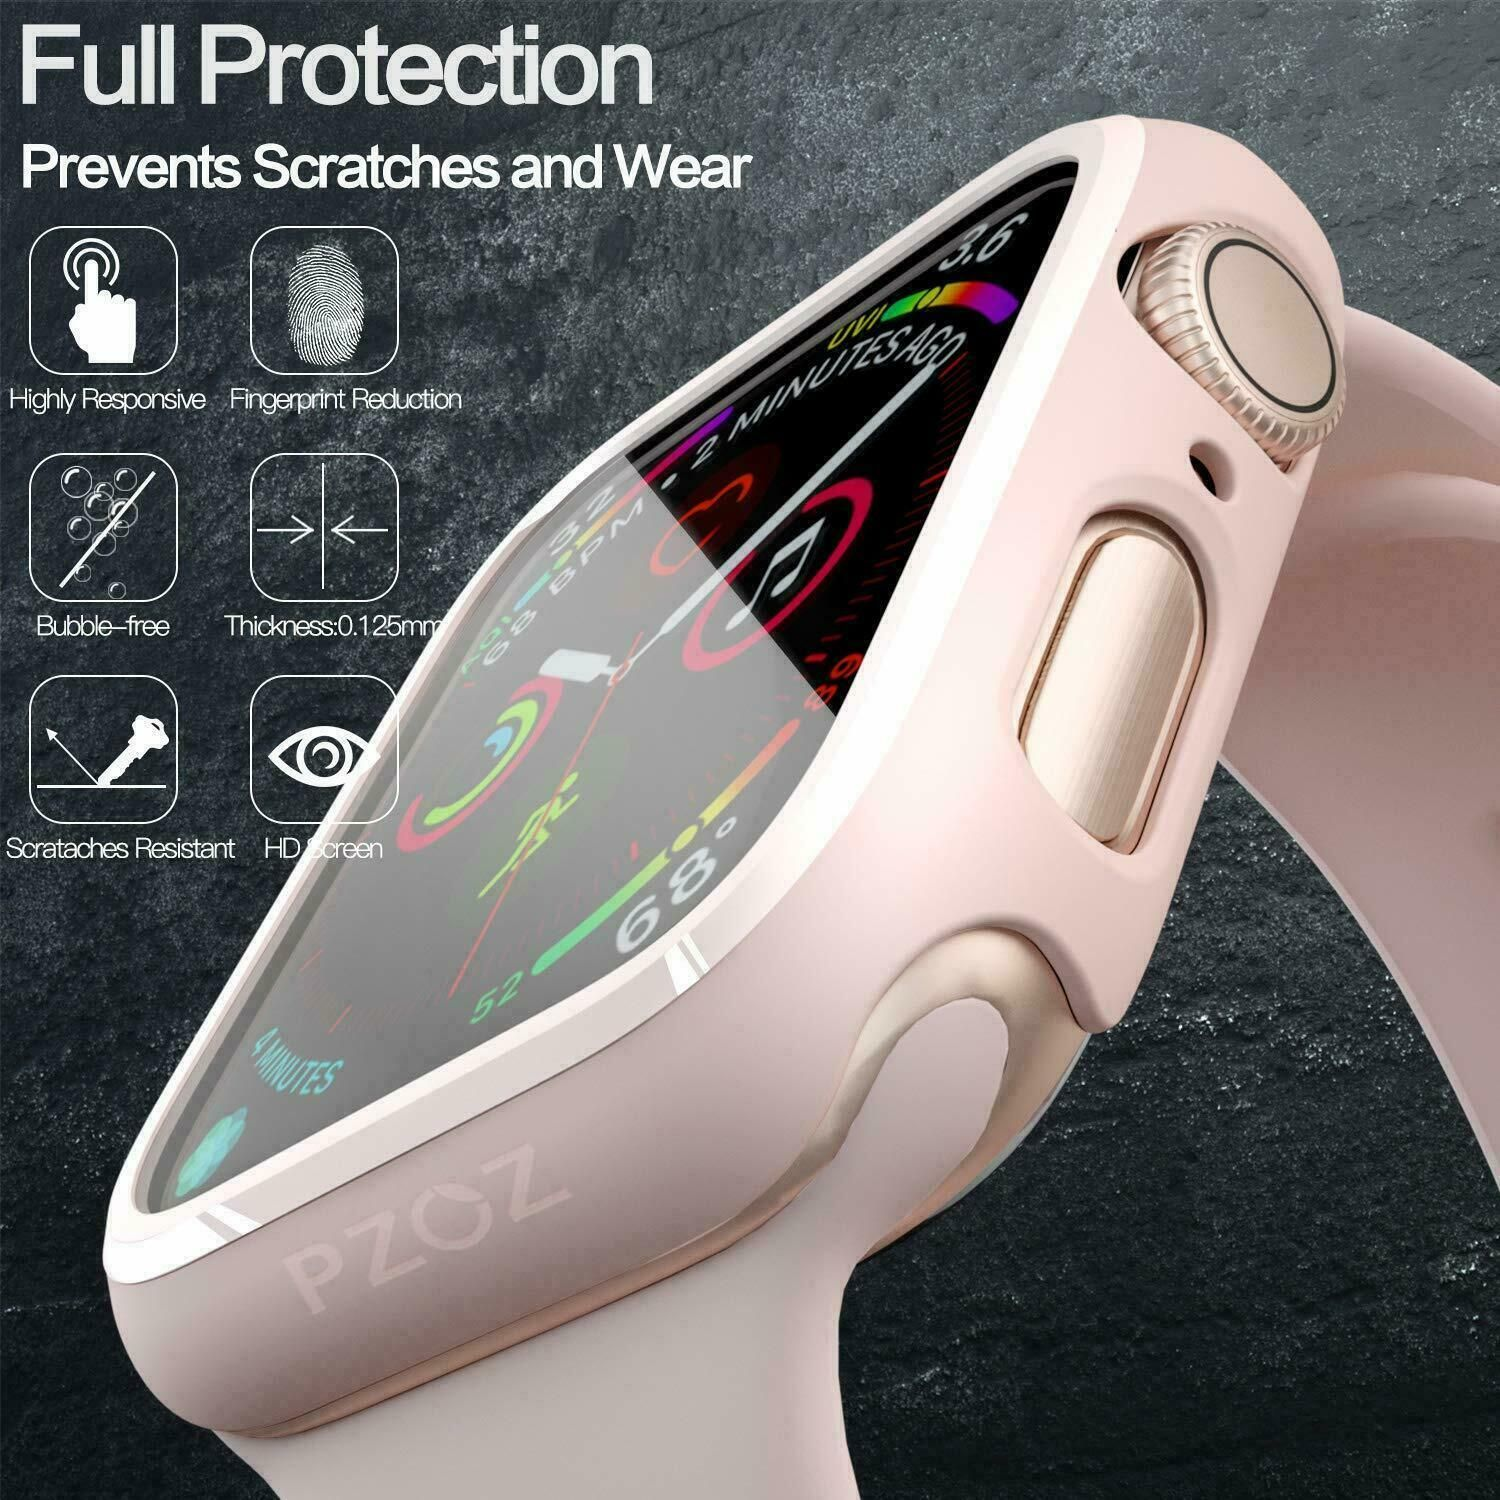 Details About Apple Watch Series 5 4 3 2 1 Screen Protector Plated Case Cover For 44 42 40 38 Apple Watch Design Apple Watch Series Apple Watch Case